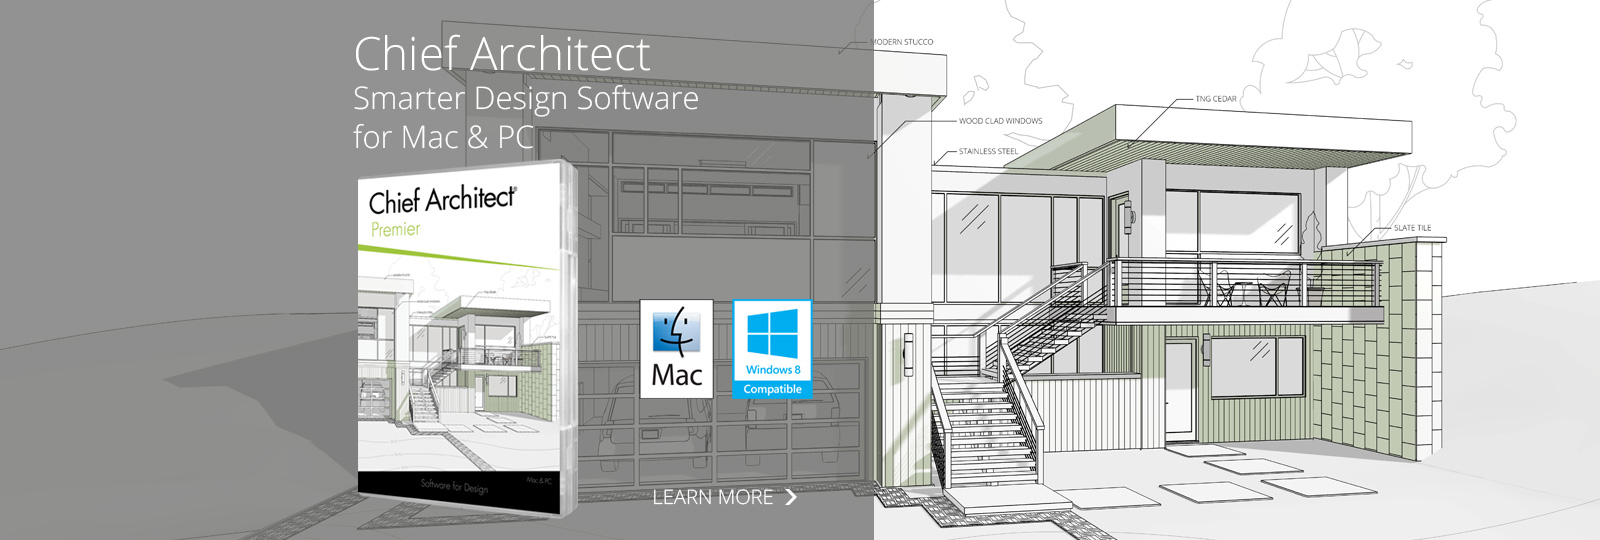 home design software. Automated building tools make home design ...